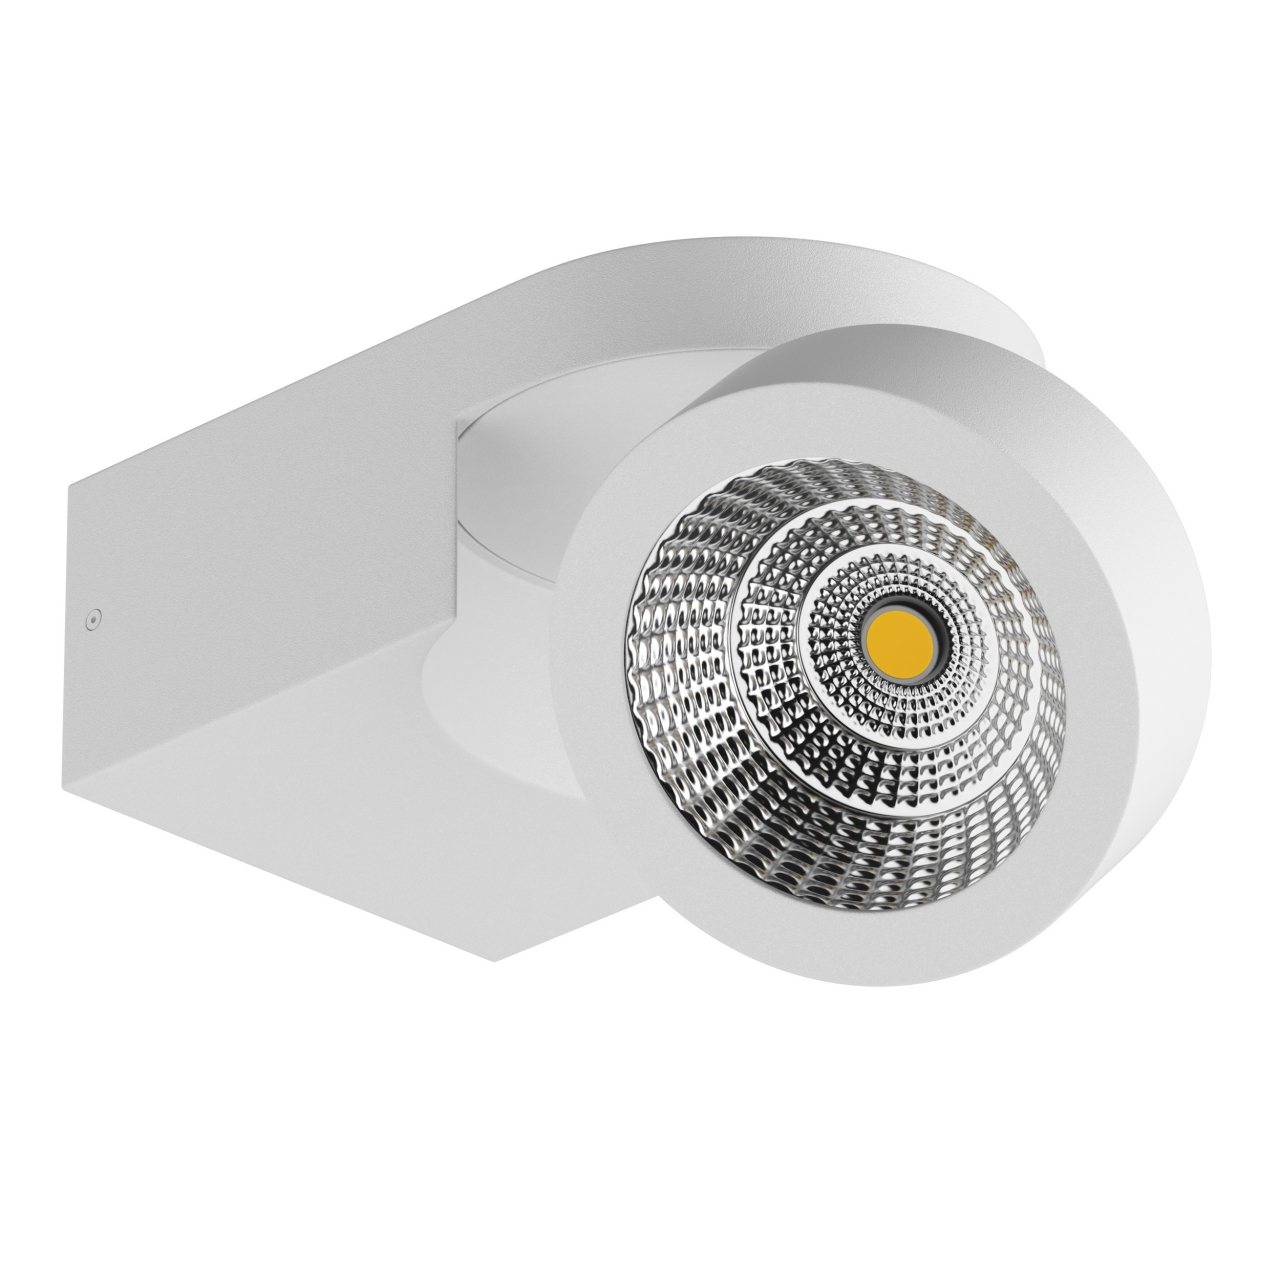 Светильник Snodo LED 10W 980LM 23G белый 4000K IP20 (в комплекте) 055164